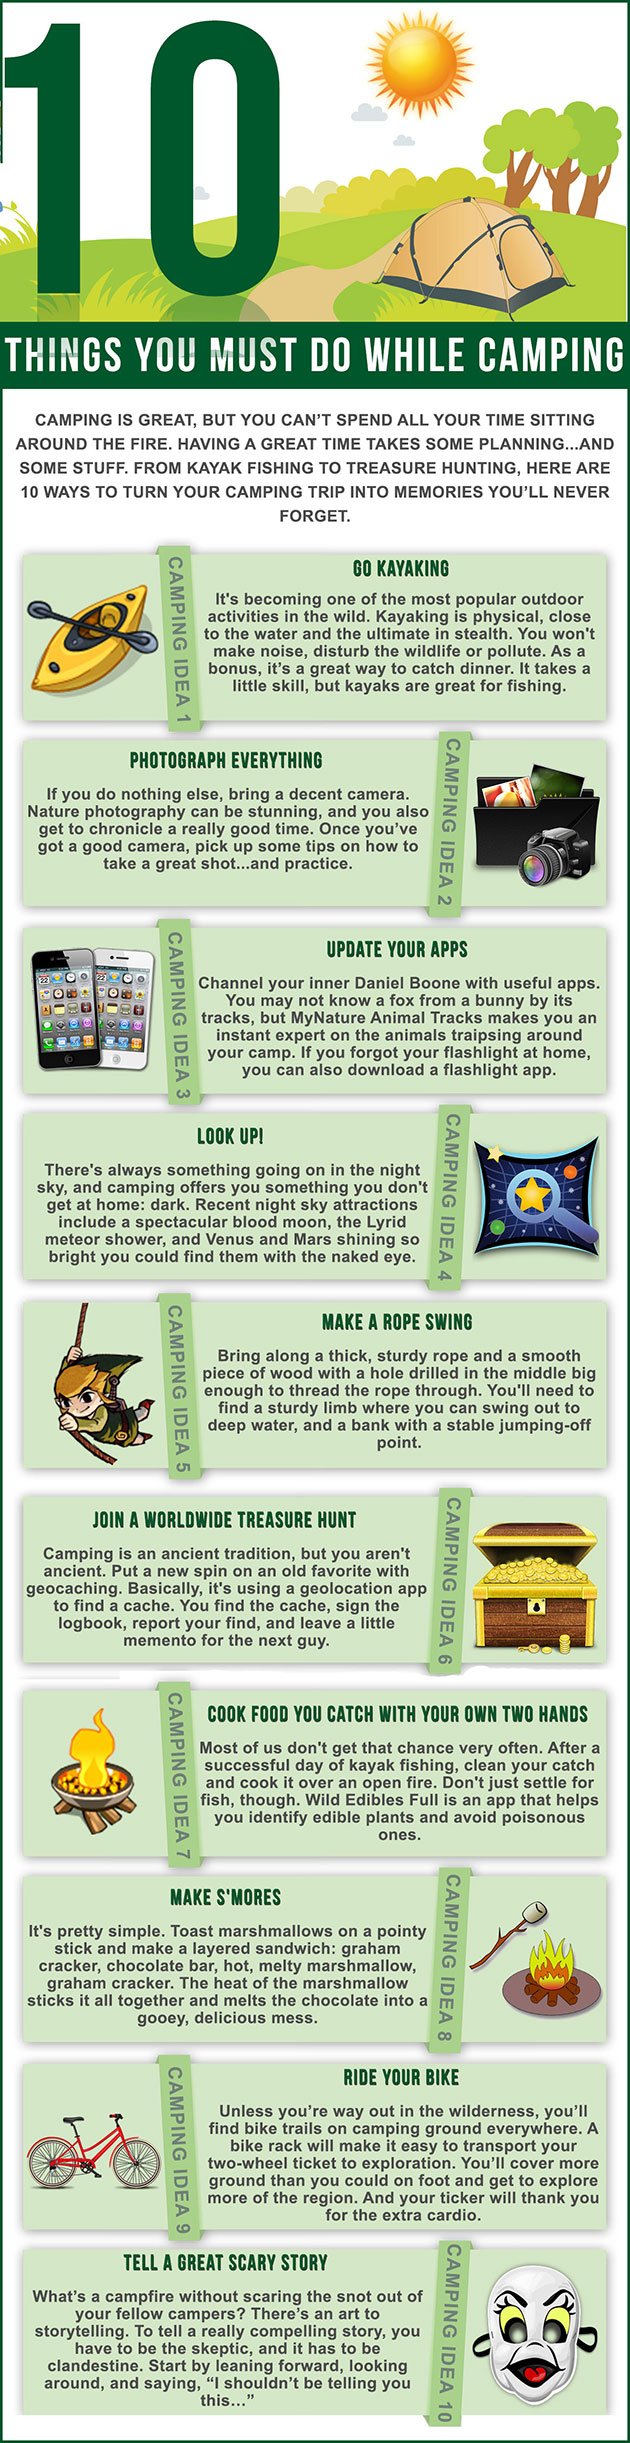 Camping infographic - 10 things you must do while camping